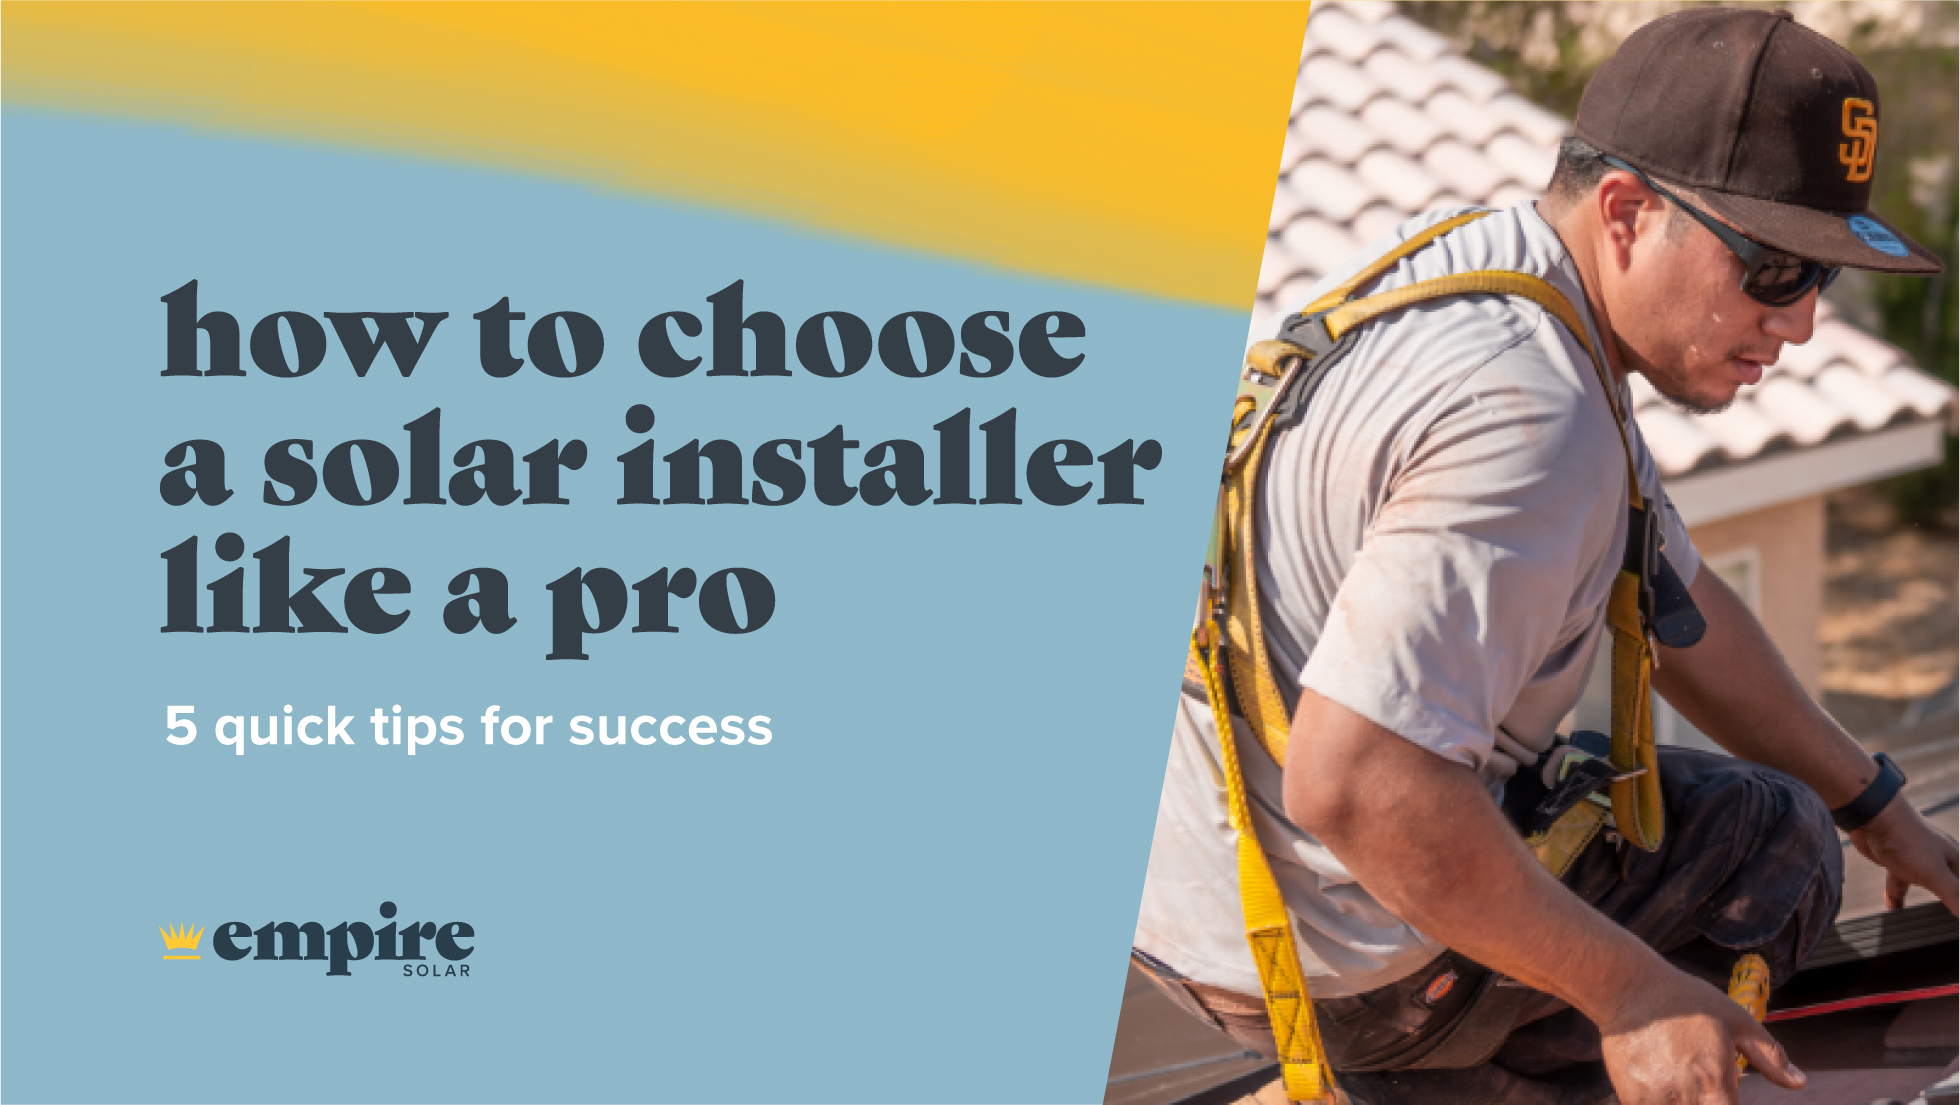 How to Choose a Solar Installer Like a Pro: 5 Quick Tips for Success